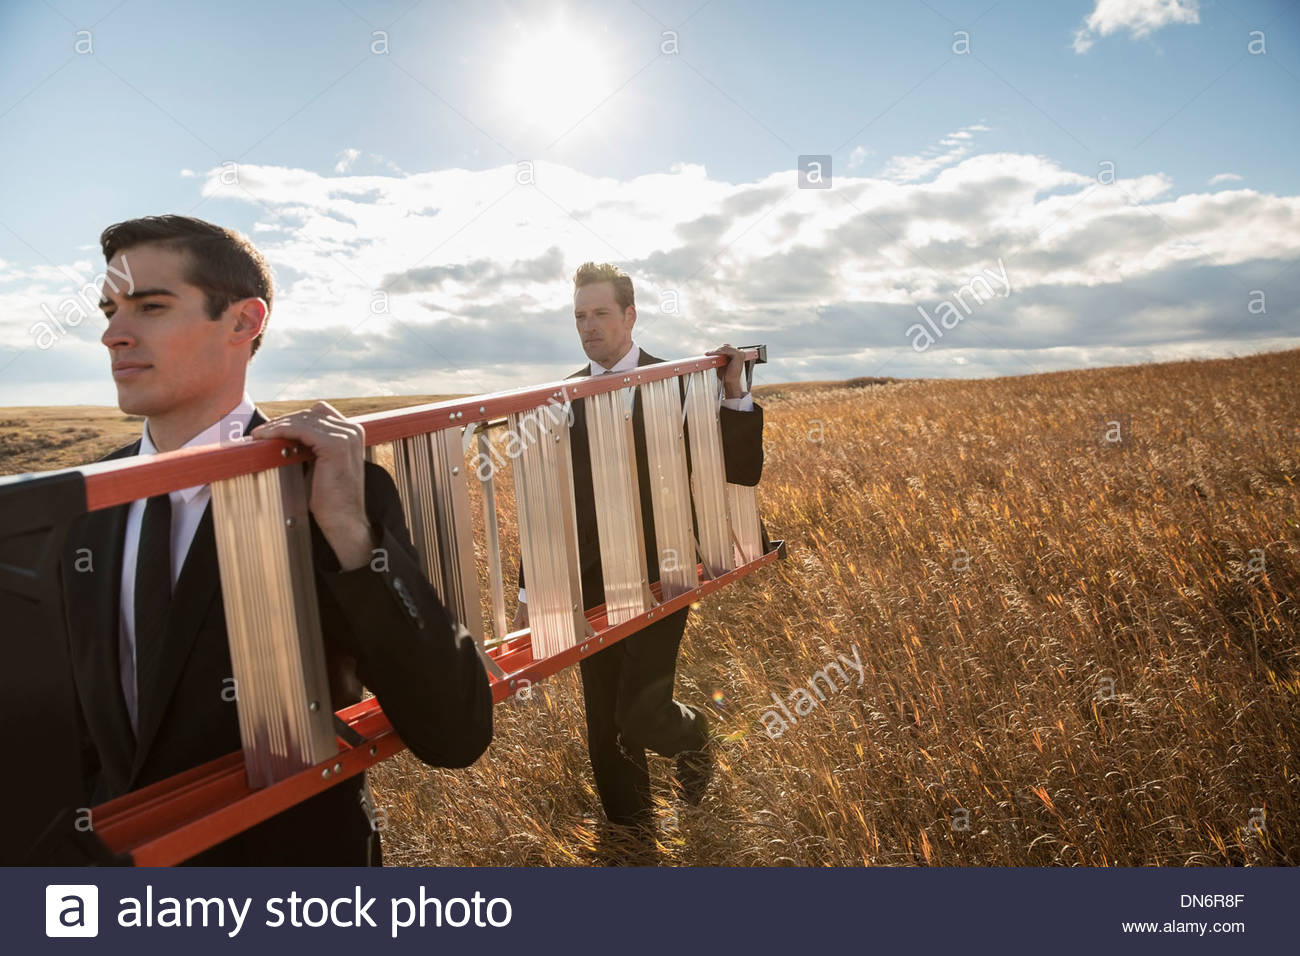 Businessmen carrying step ladder on field - Stock Image